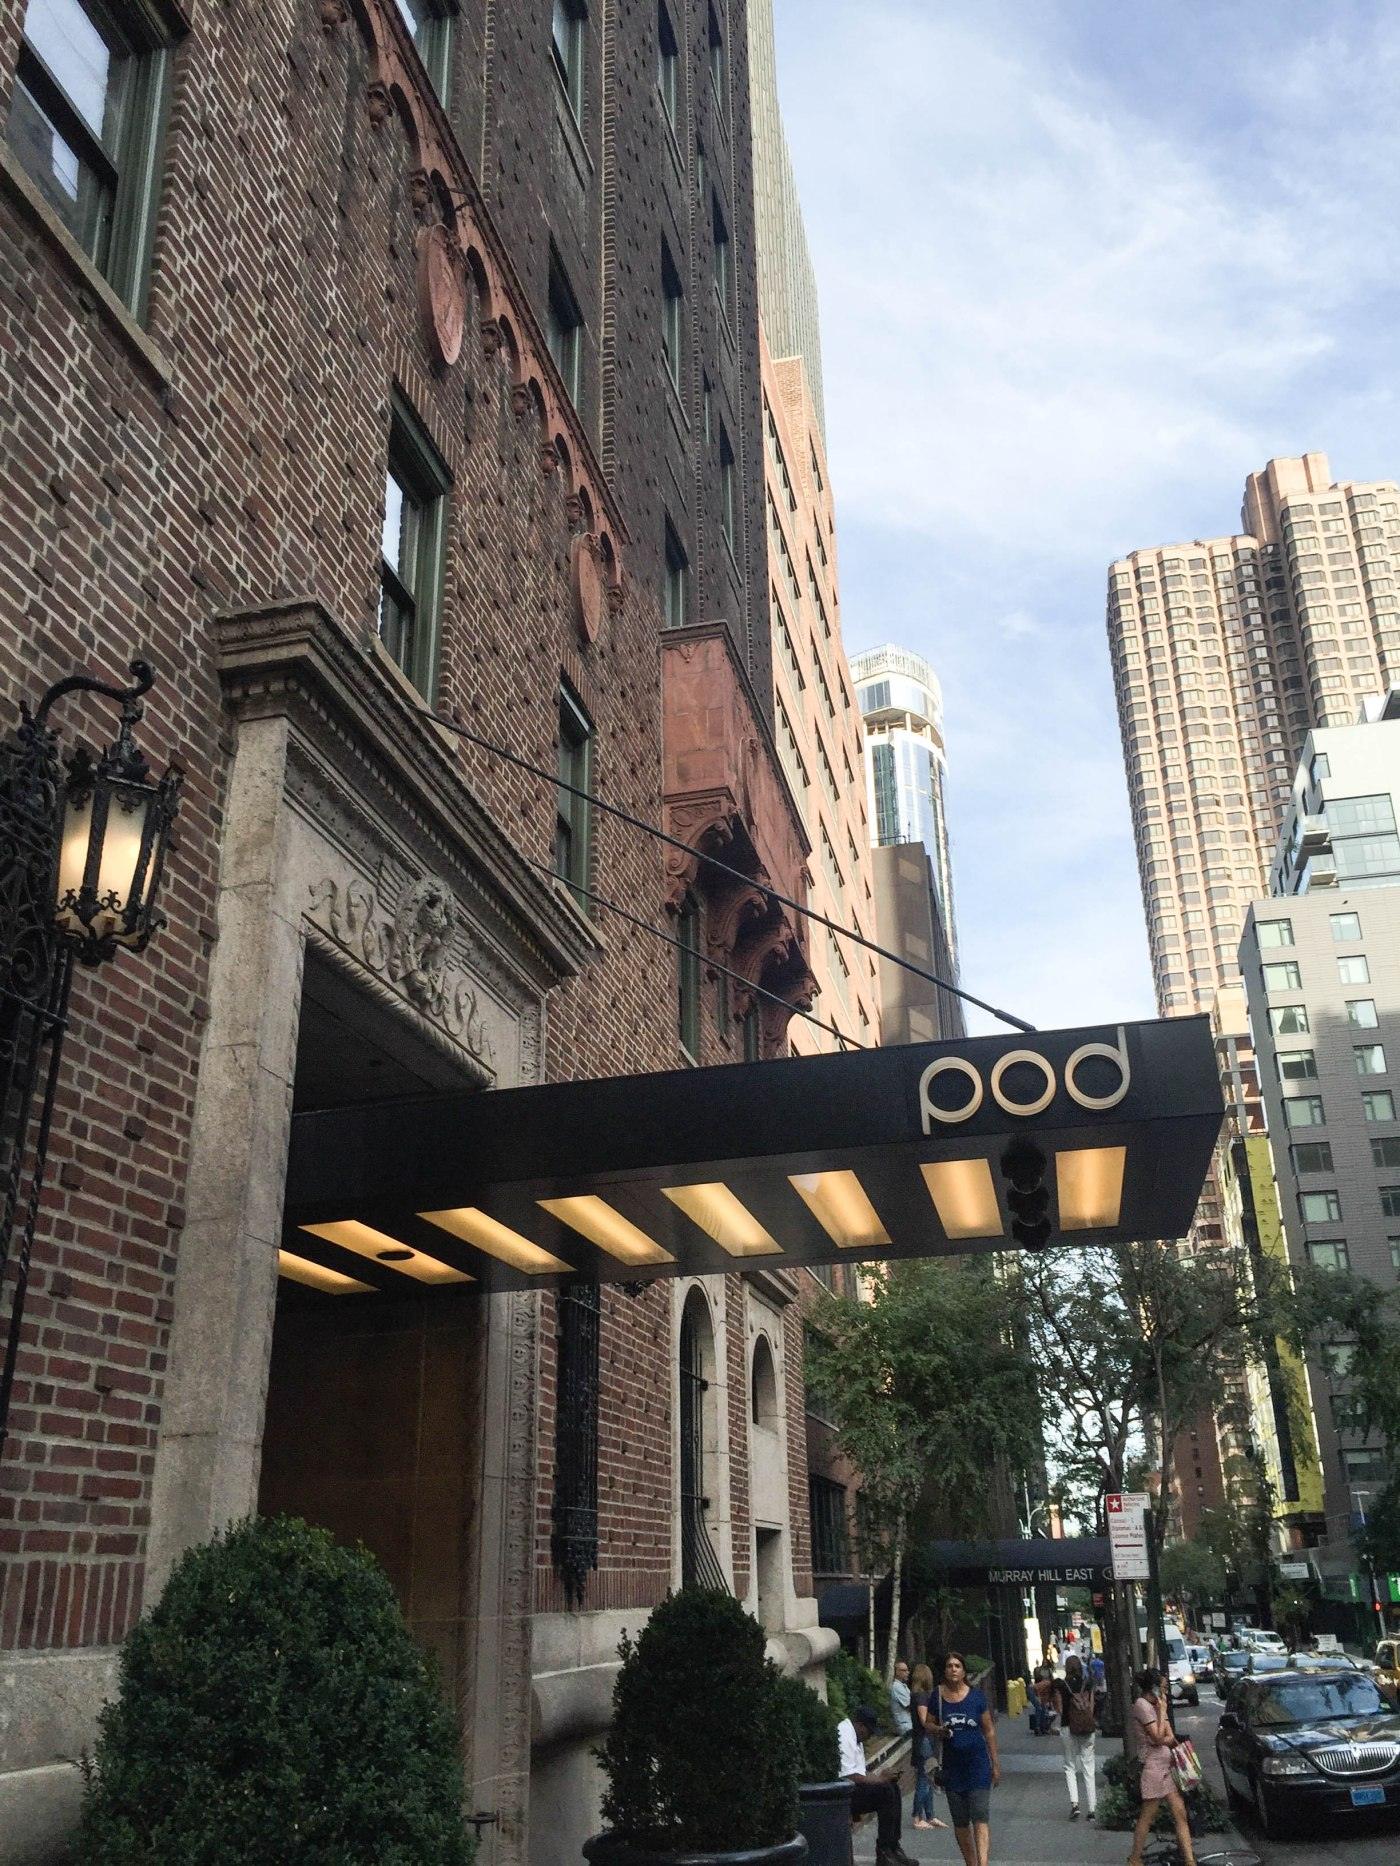 Pod 39 Hotel--39th Street-New York, New York